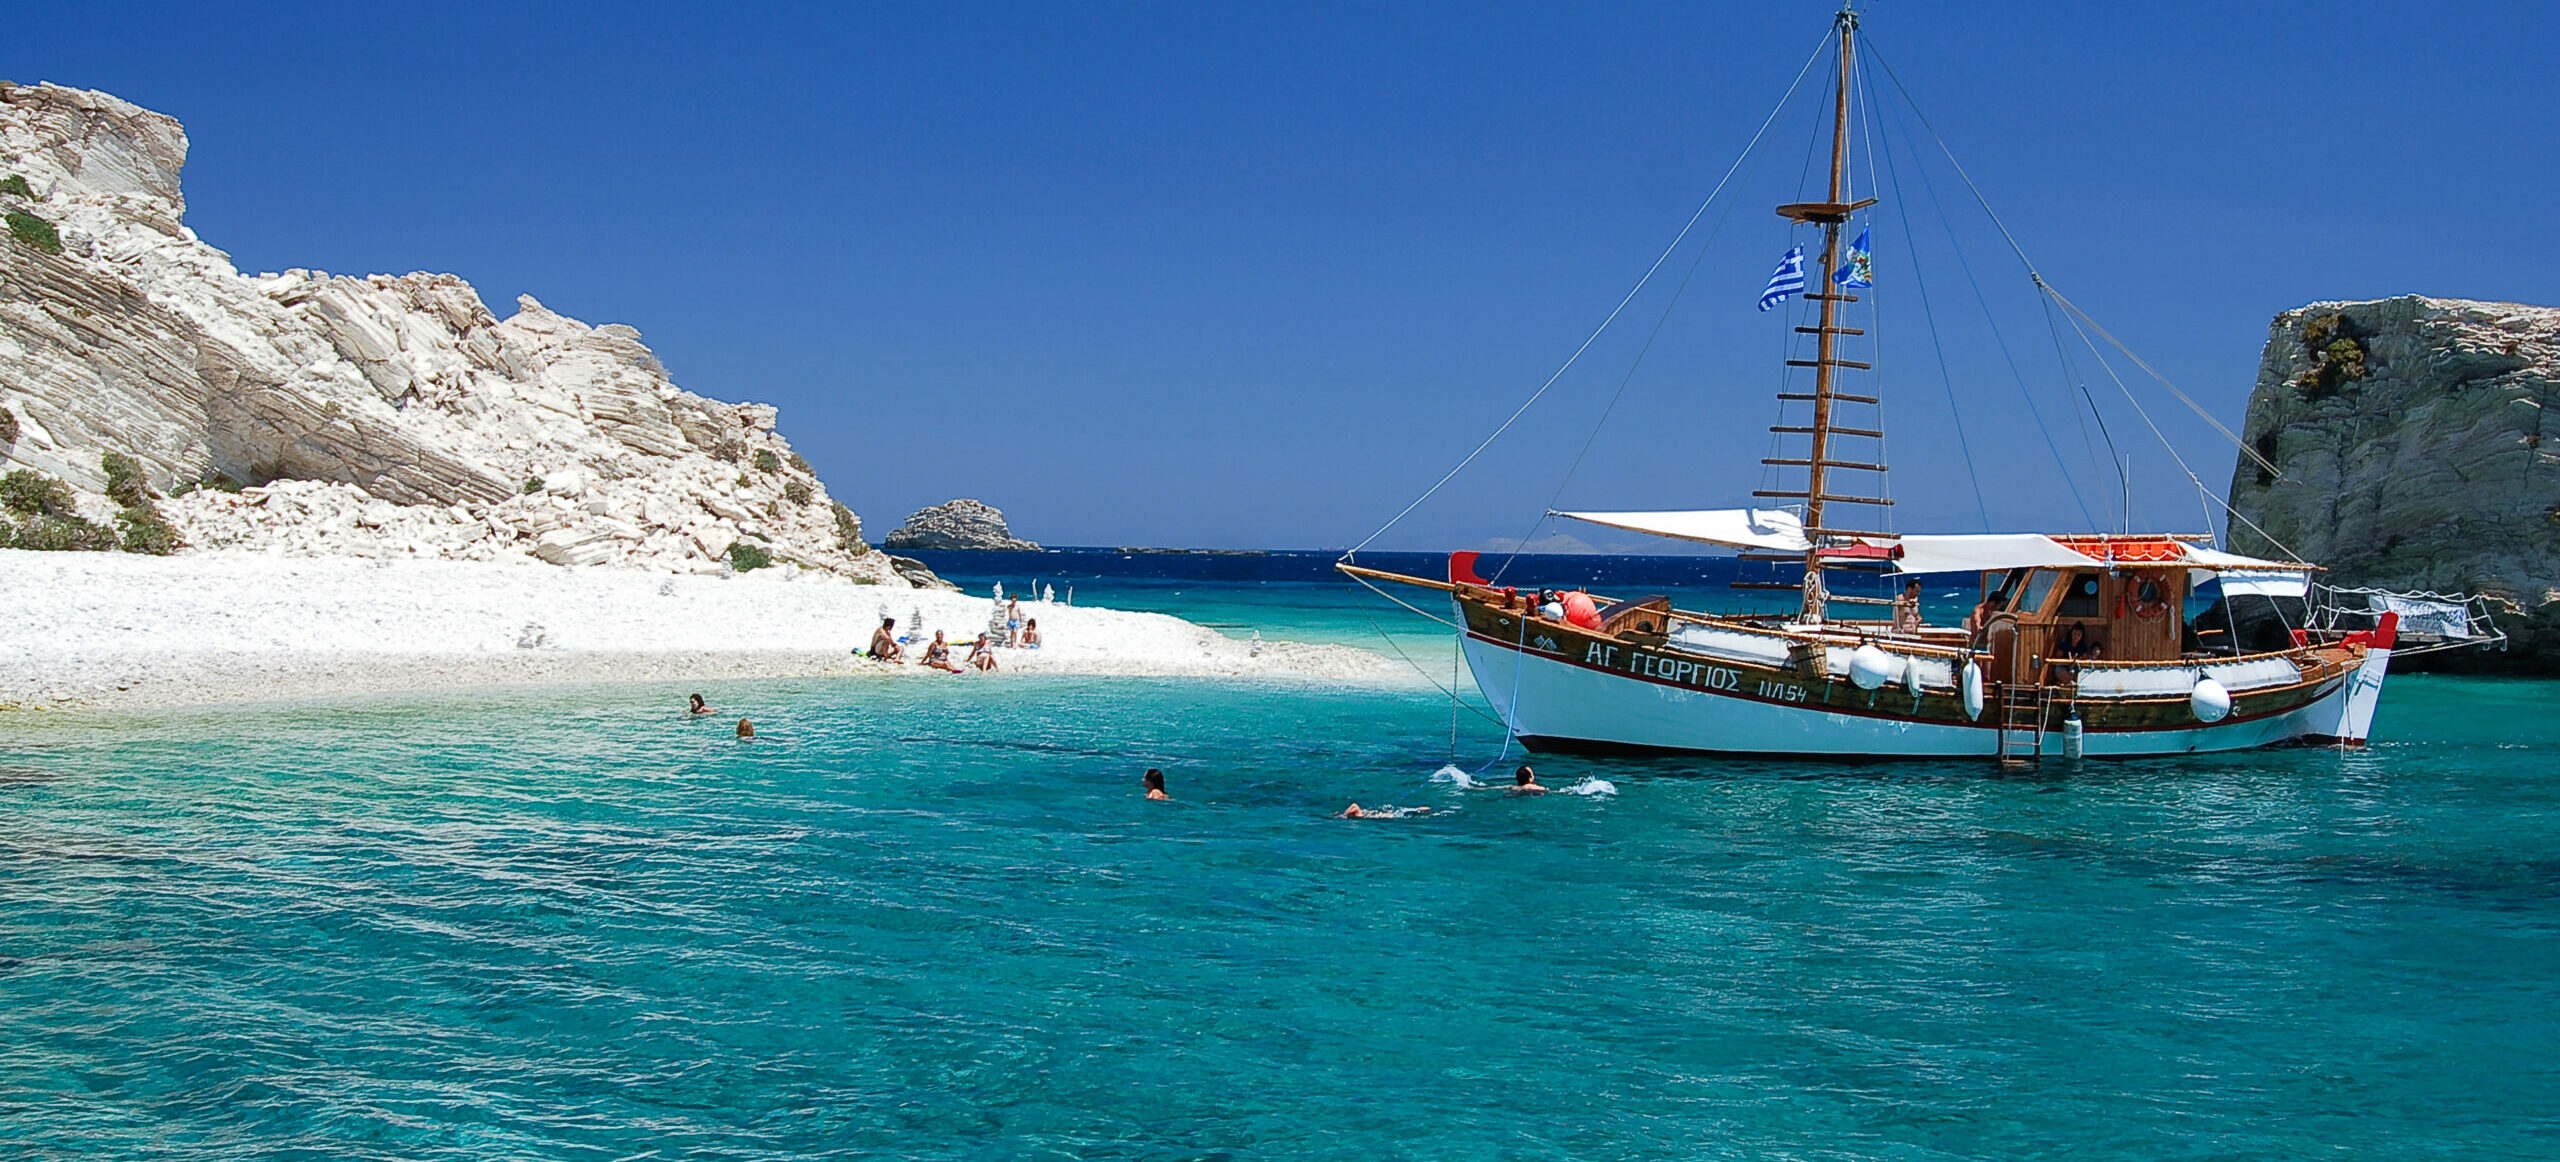 The island called the small Italy of the Aegean